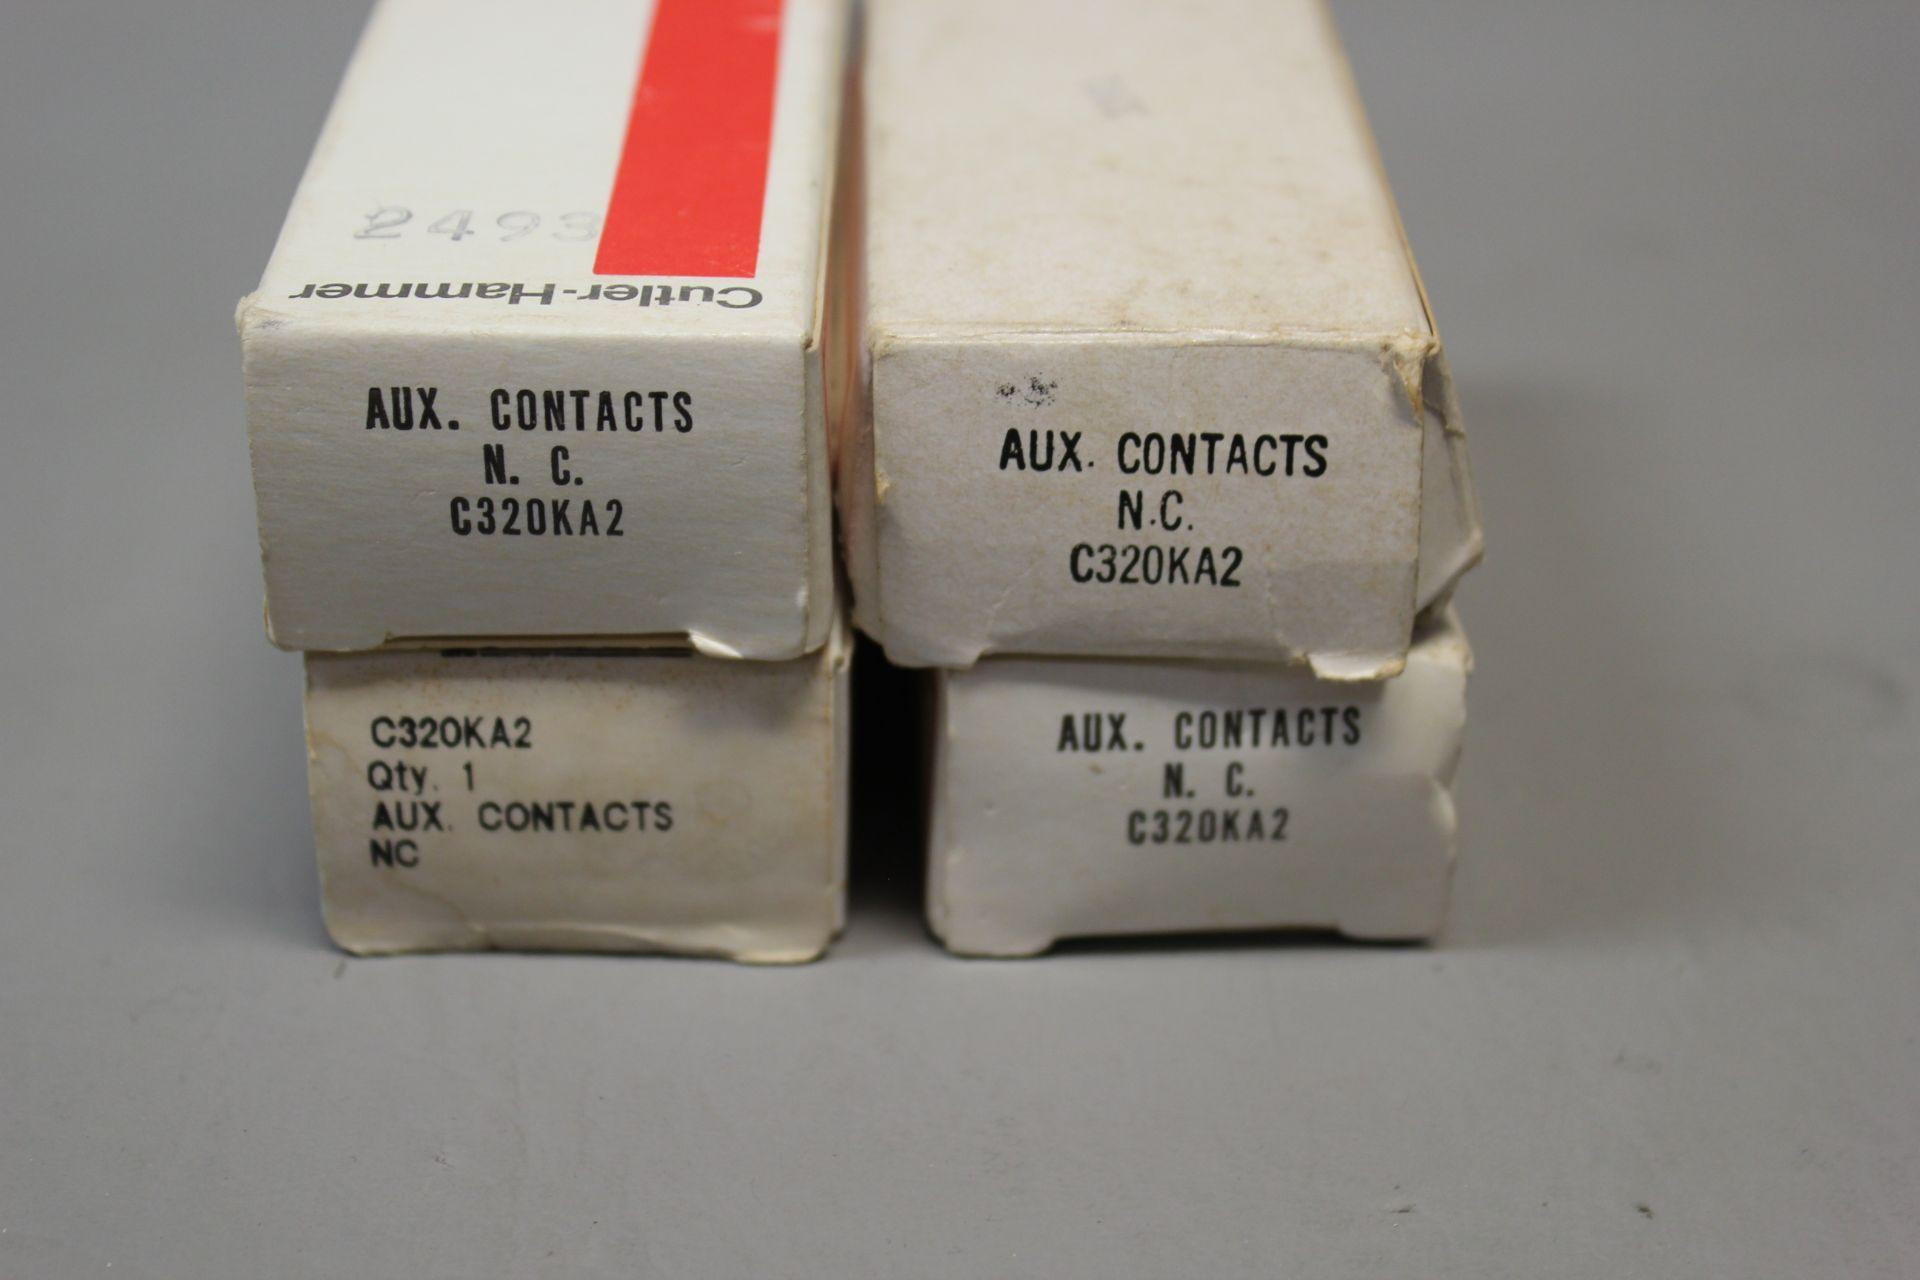 LOT OF NEW CUTLER HAMMER AUXILIARY CONTACTS - Image 2 of 2